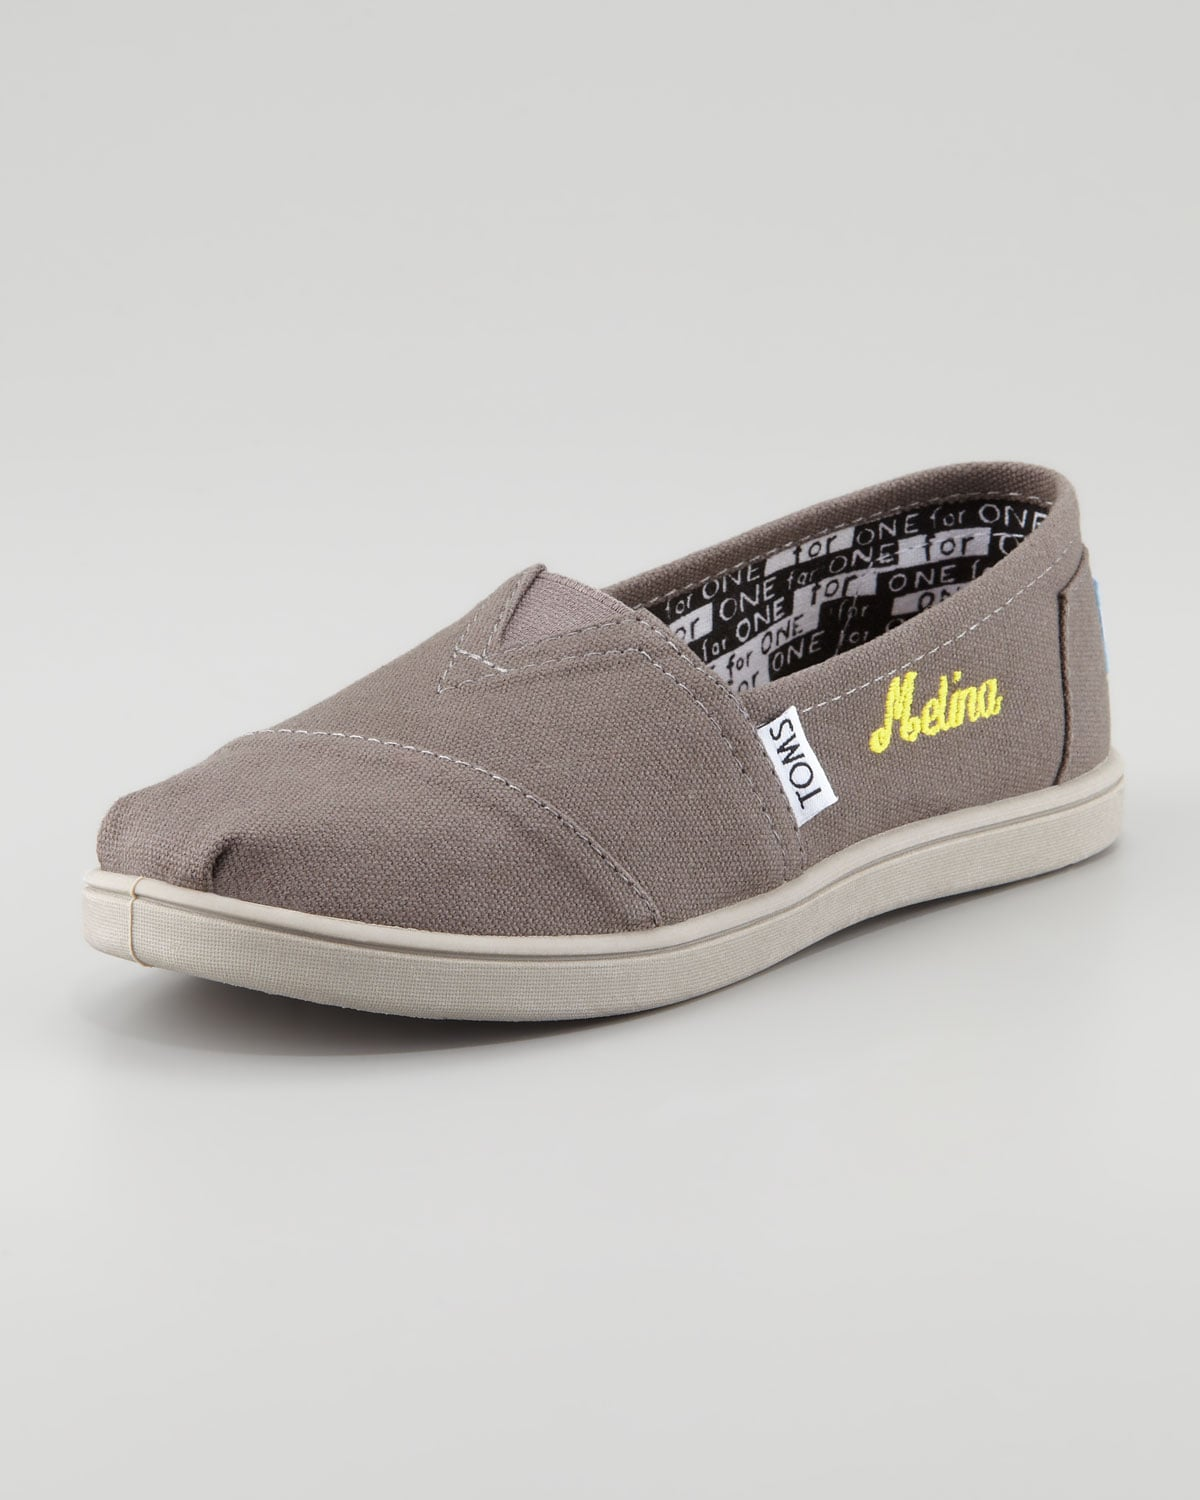 TOMS Personalized Slip-Ons